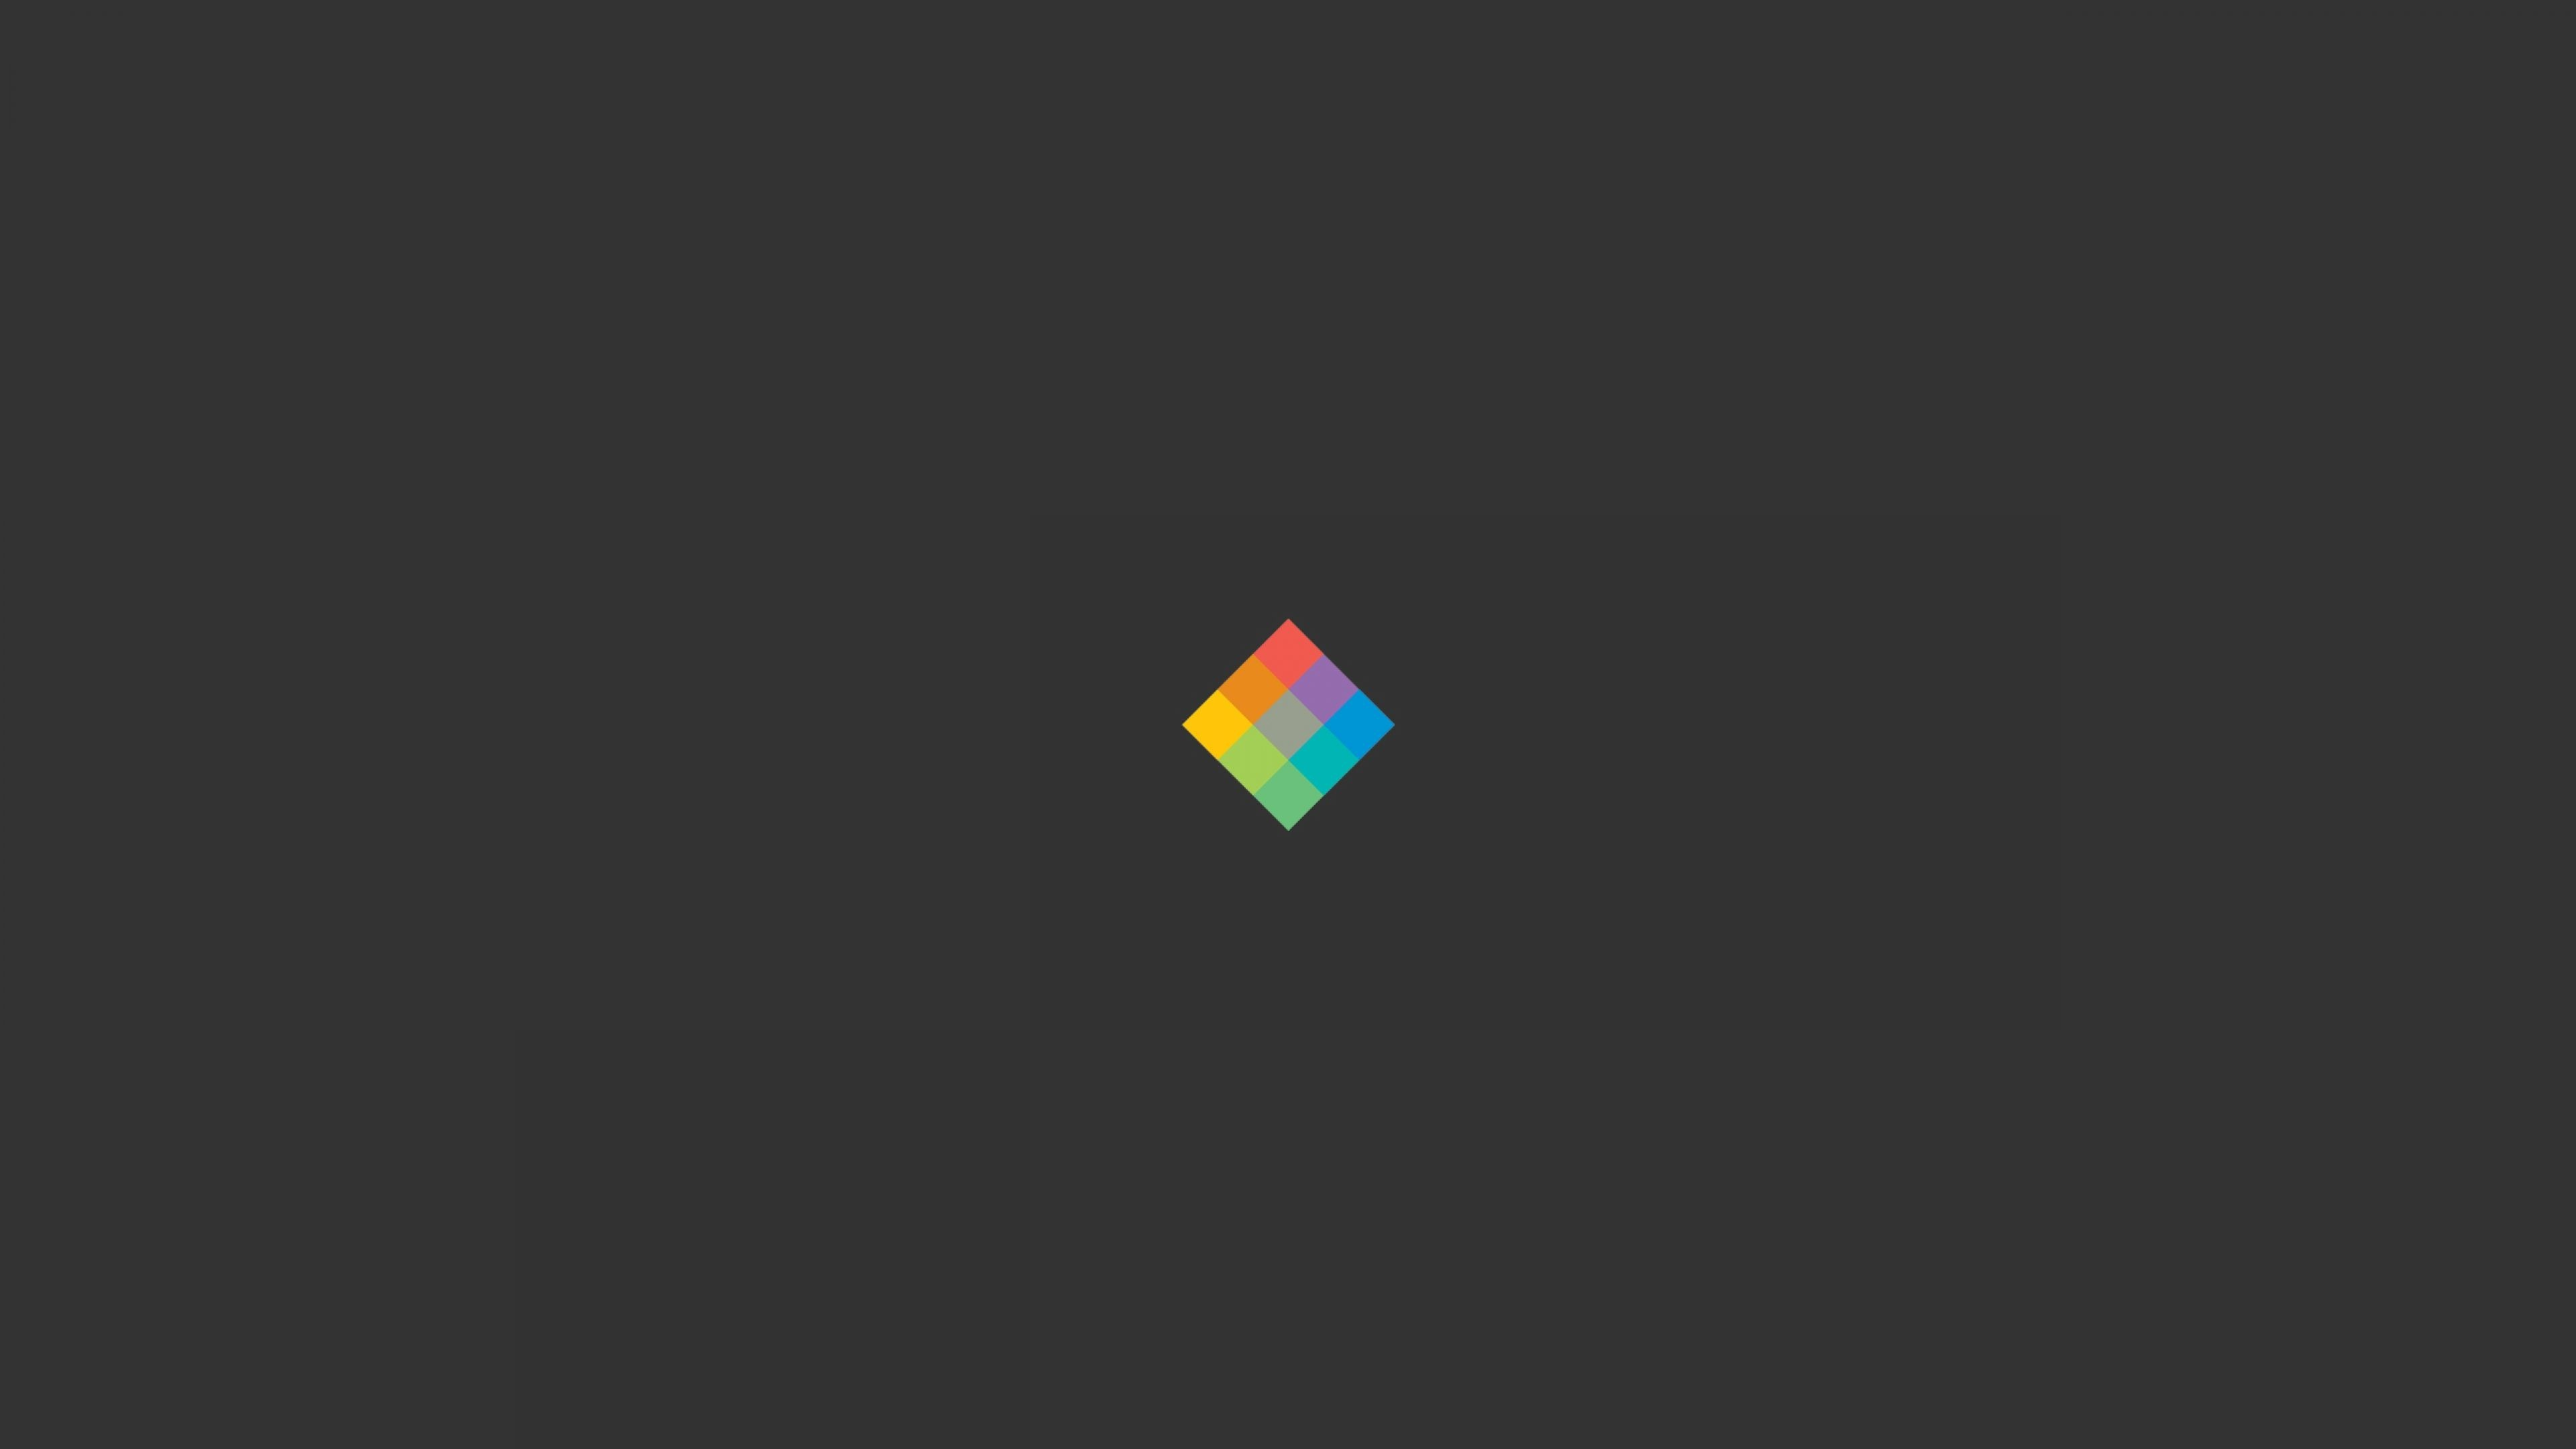 5 Days Of Awesome Wallpapers: Minimalist Wallpapers